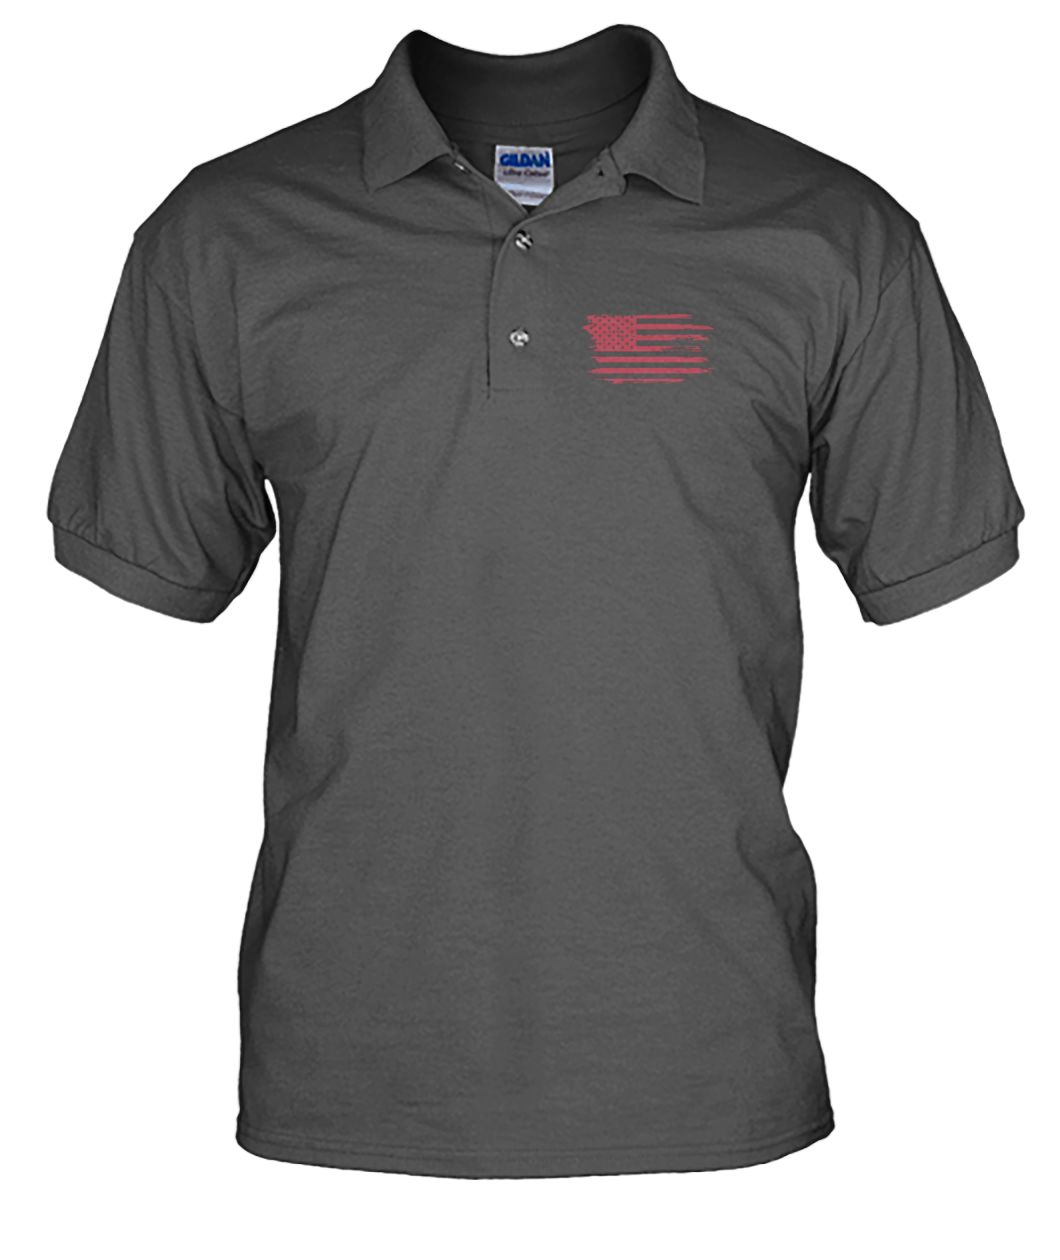 VETERANS 6 THINGS YOU DONT MESS WITH polo shirt Men's Polo